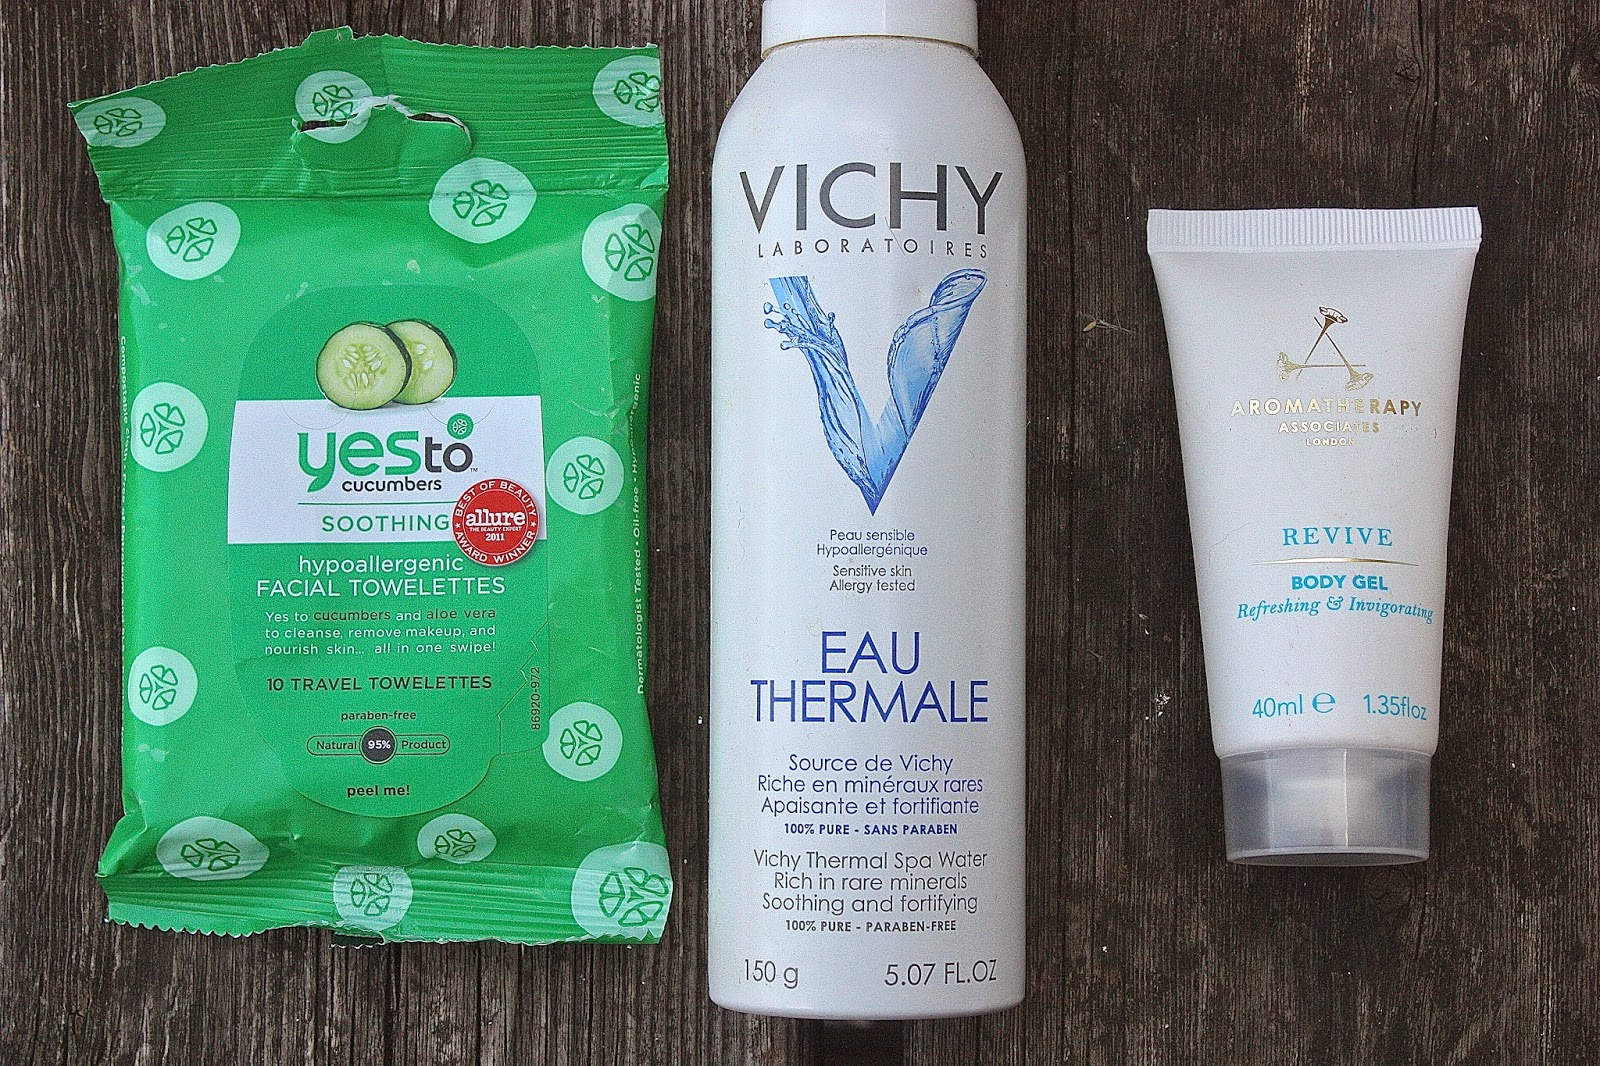 Products that prevent you from sweating. Products that cool you down.